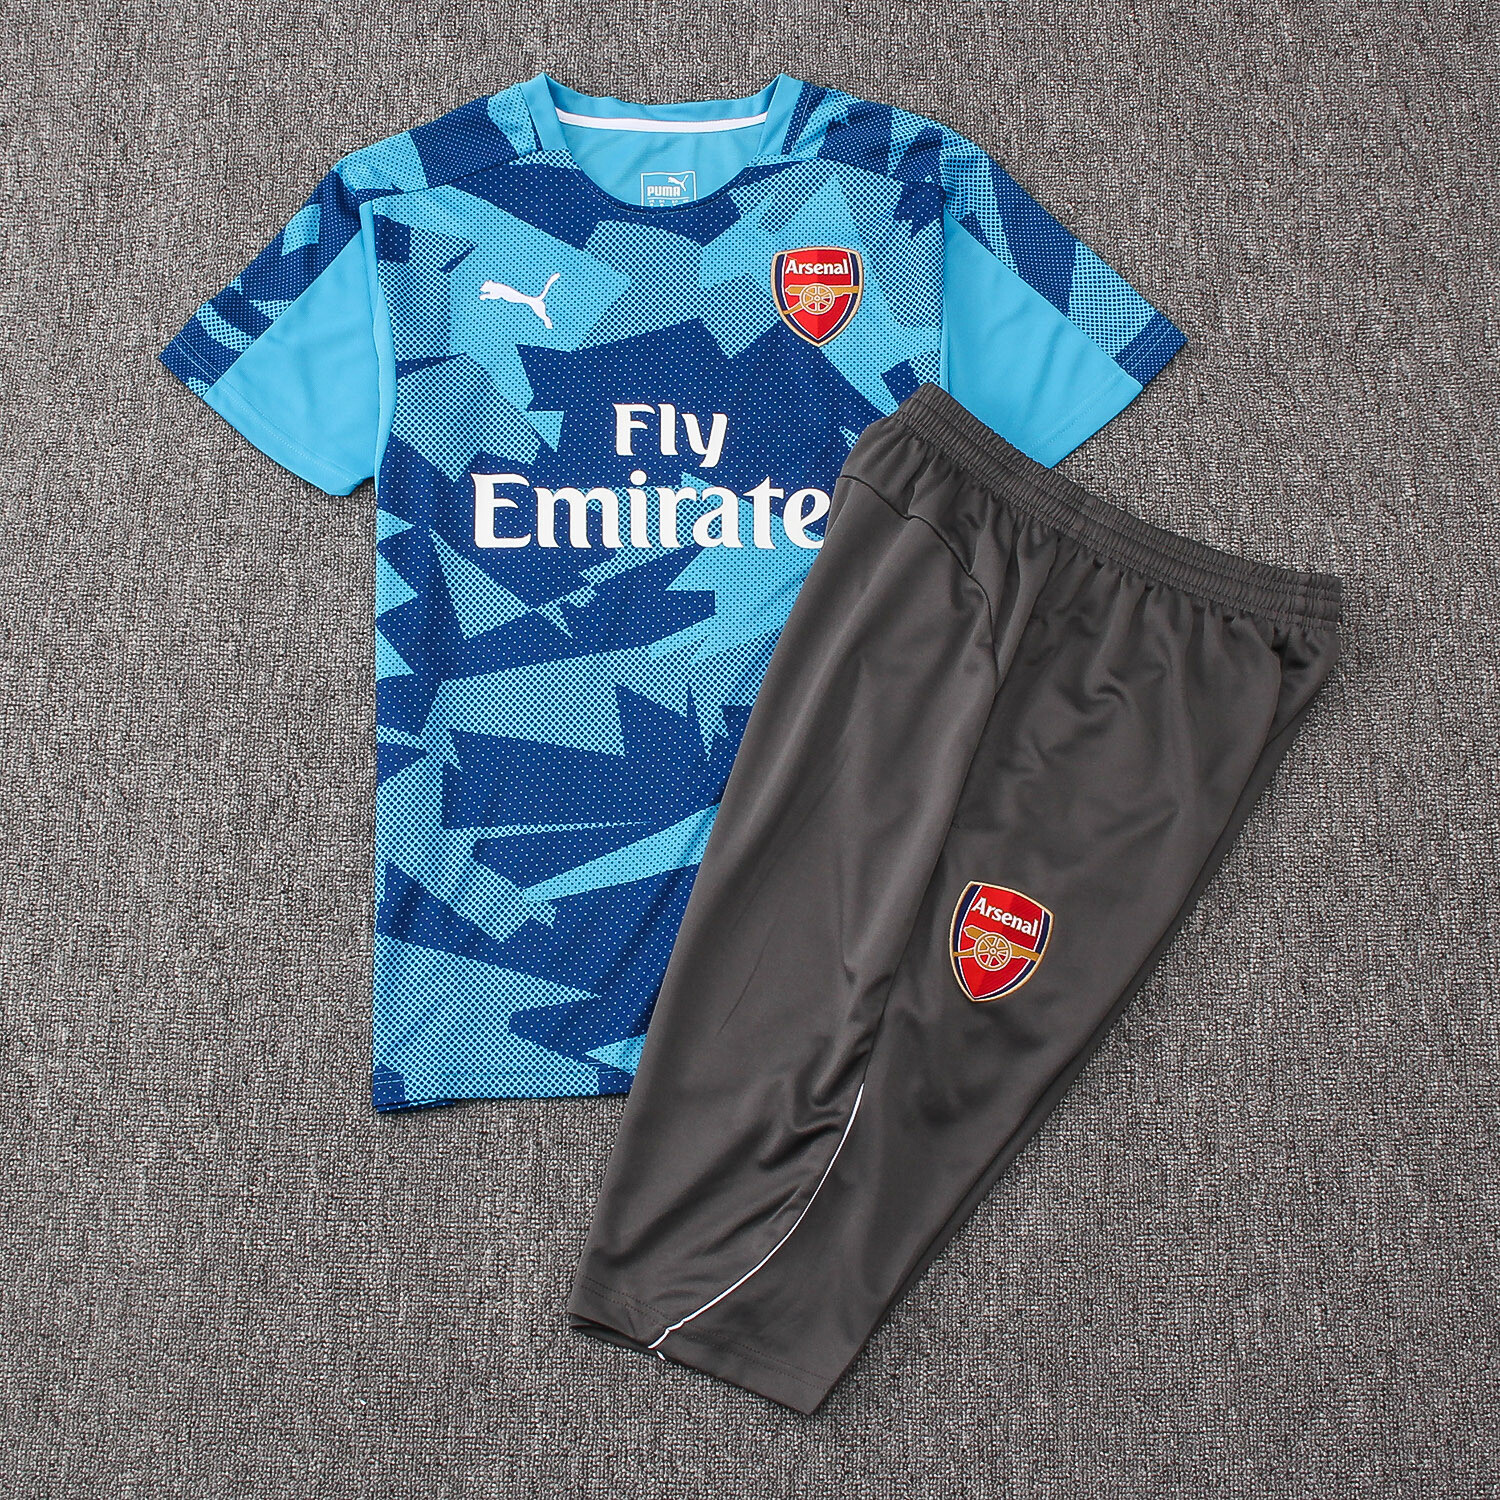 Kit Treinamento manga curta 2019/2020 Arsenal